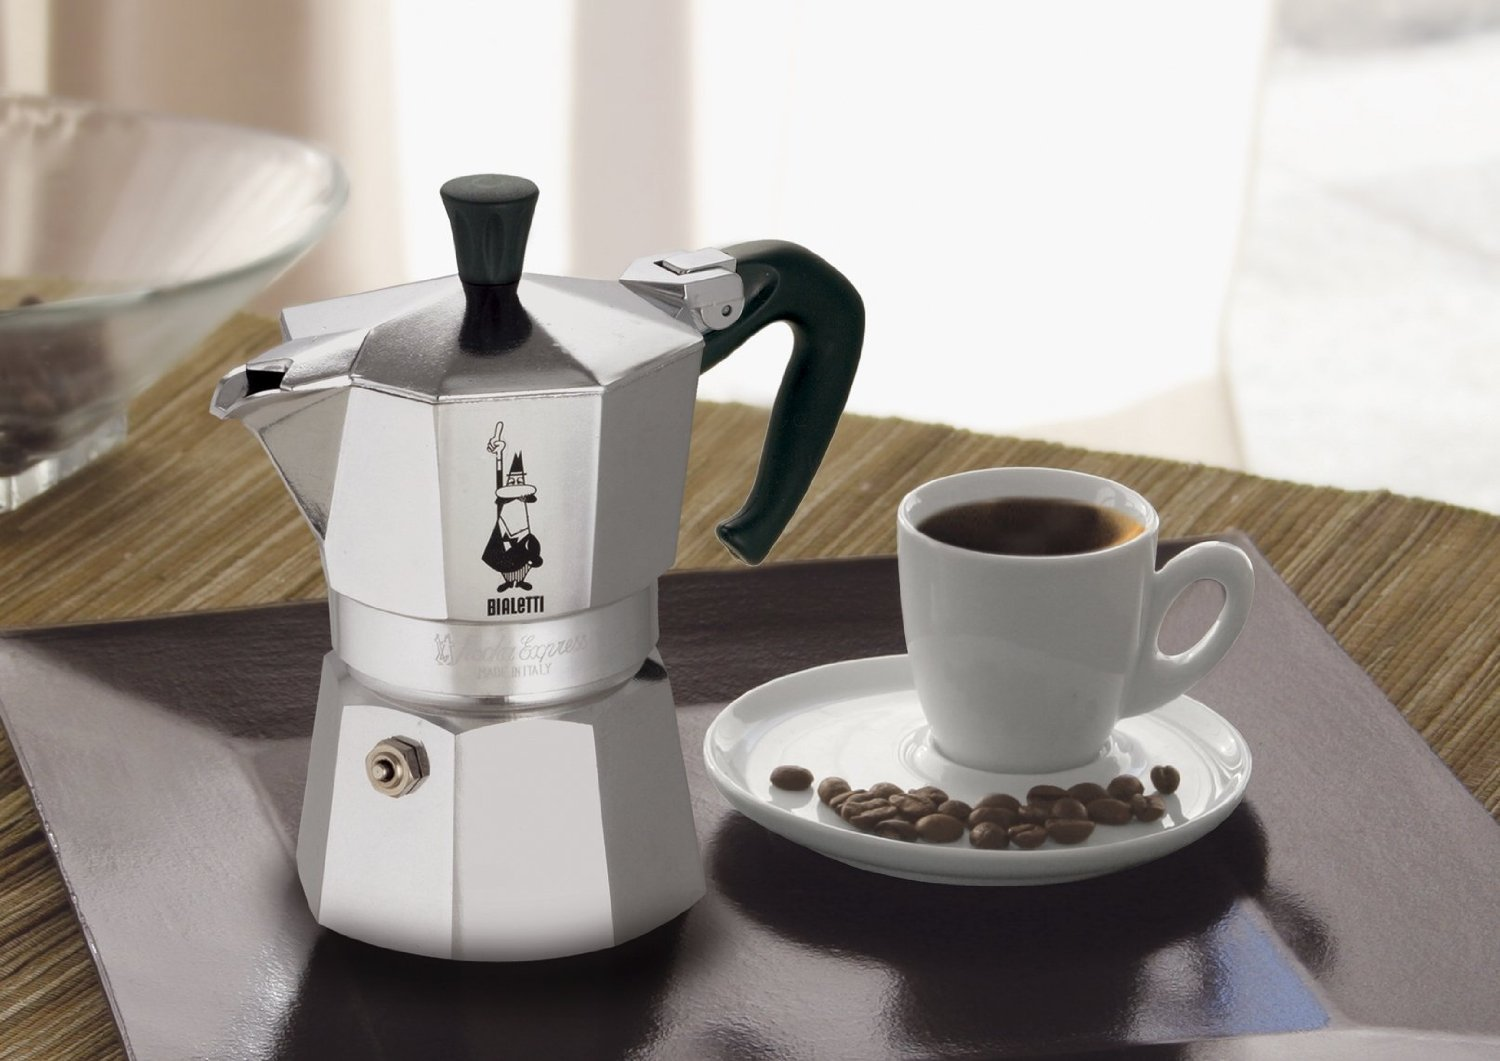 Bialetti Moka Express Stovetop Espresso Maker and Filter (3-Cup) by Bialetti (Image #1)